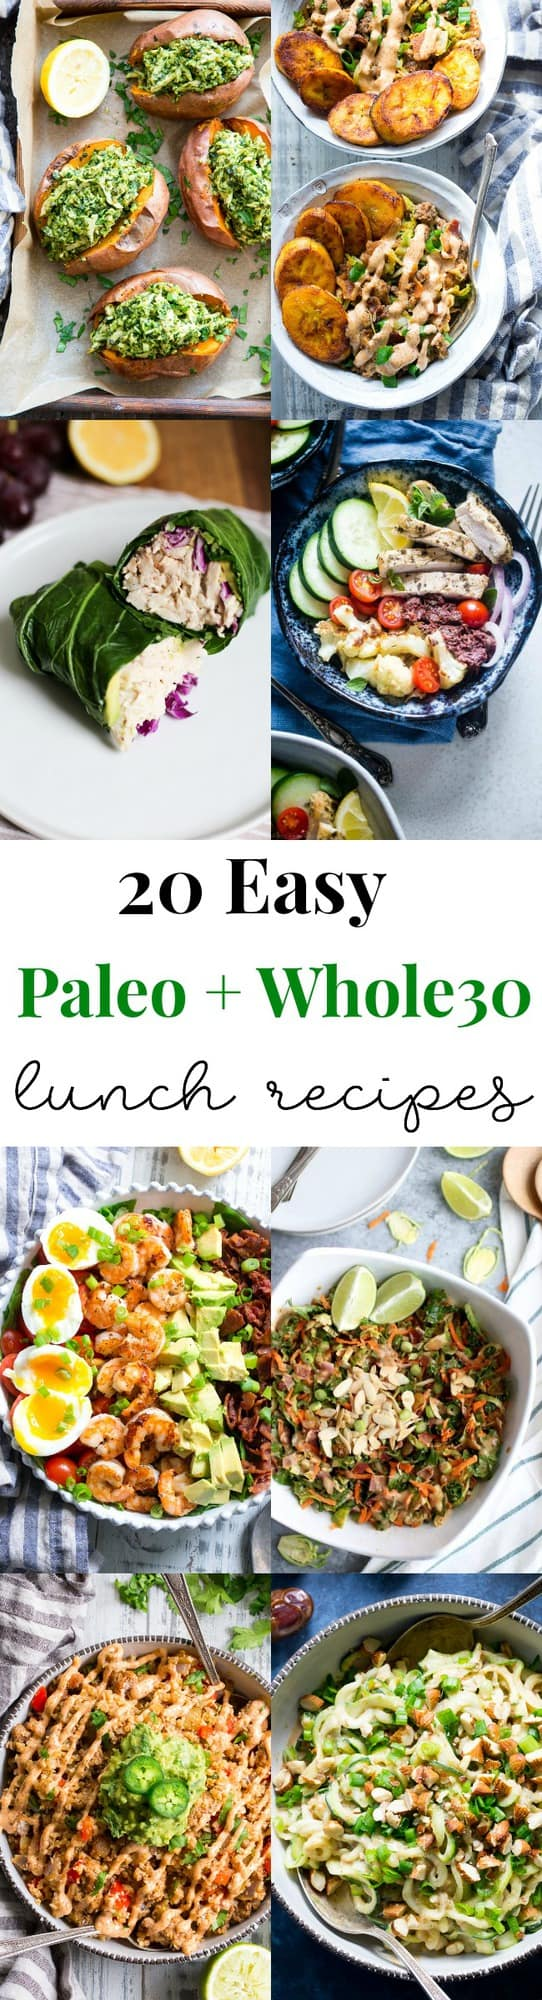 20 Easy Whole30 Paleo Lunch Recipes